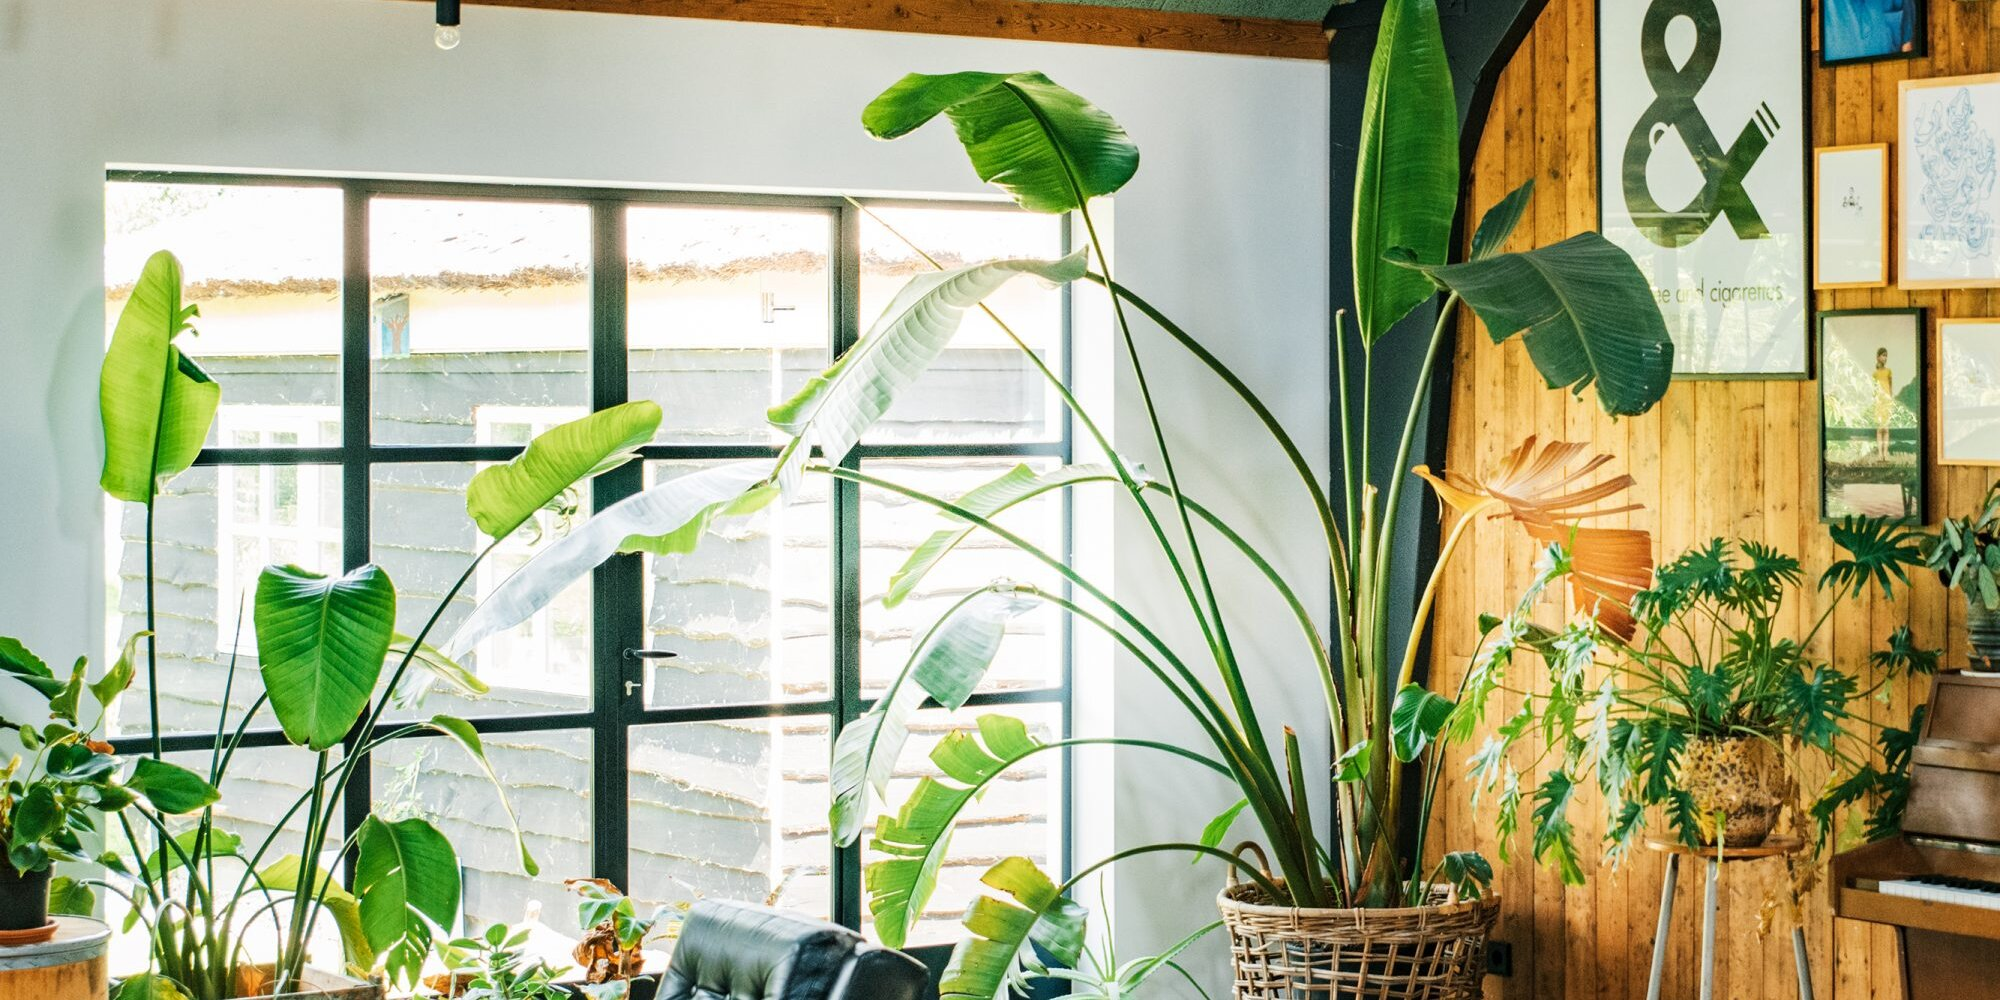 5 Houseplants That Grow Tall and Make a Big Statement